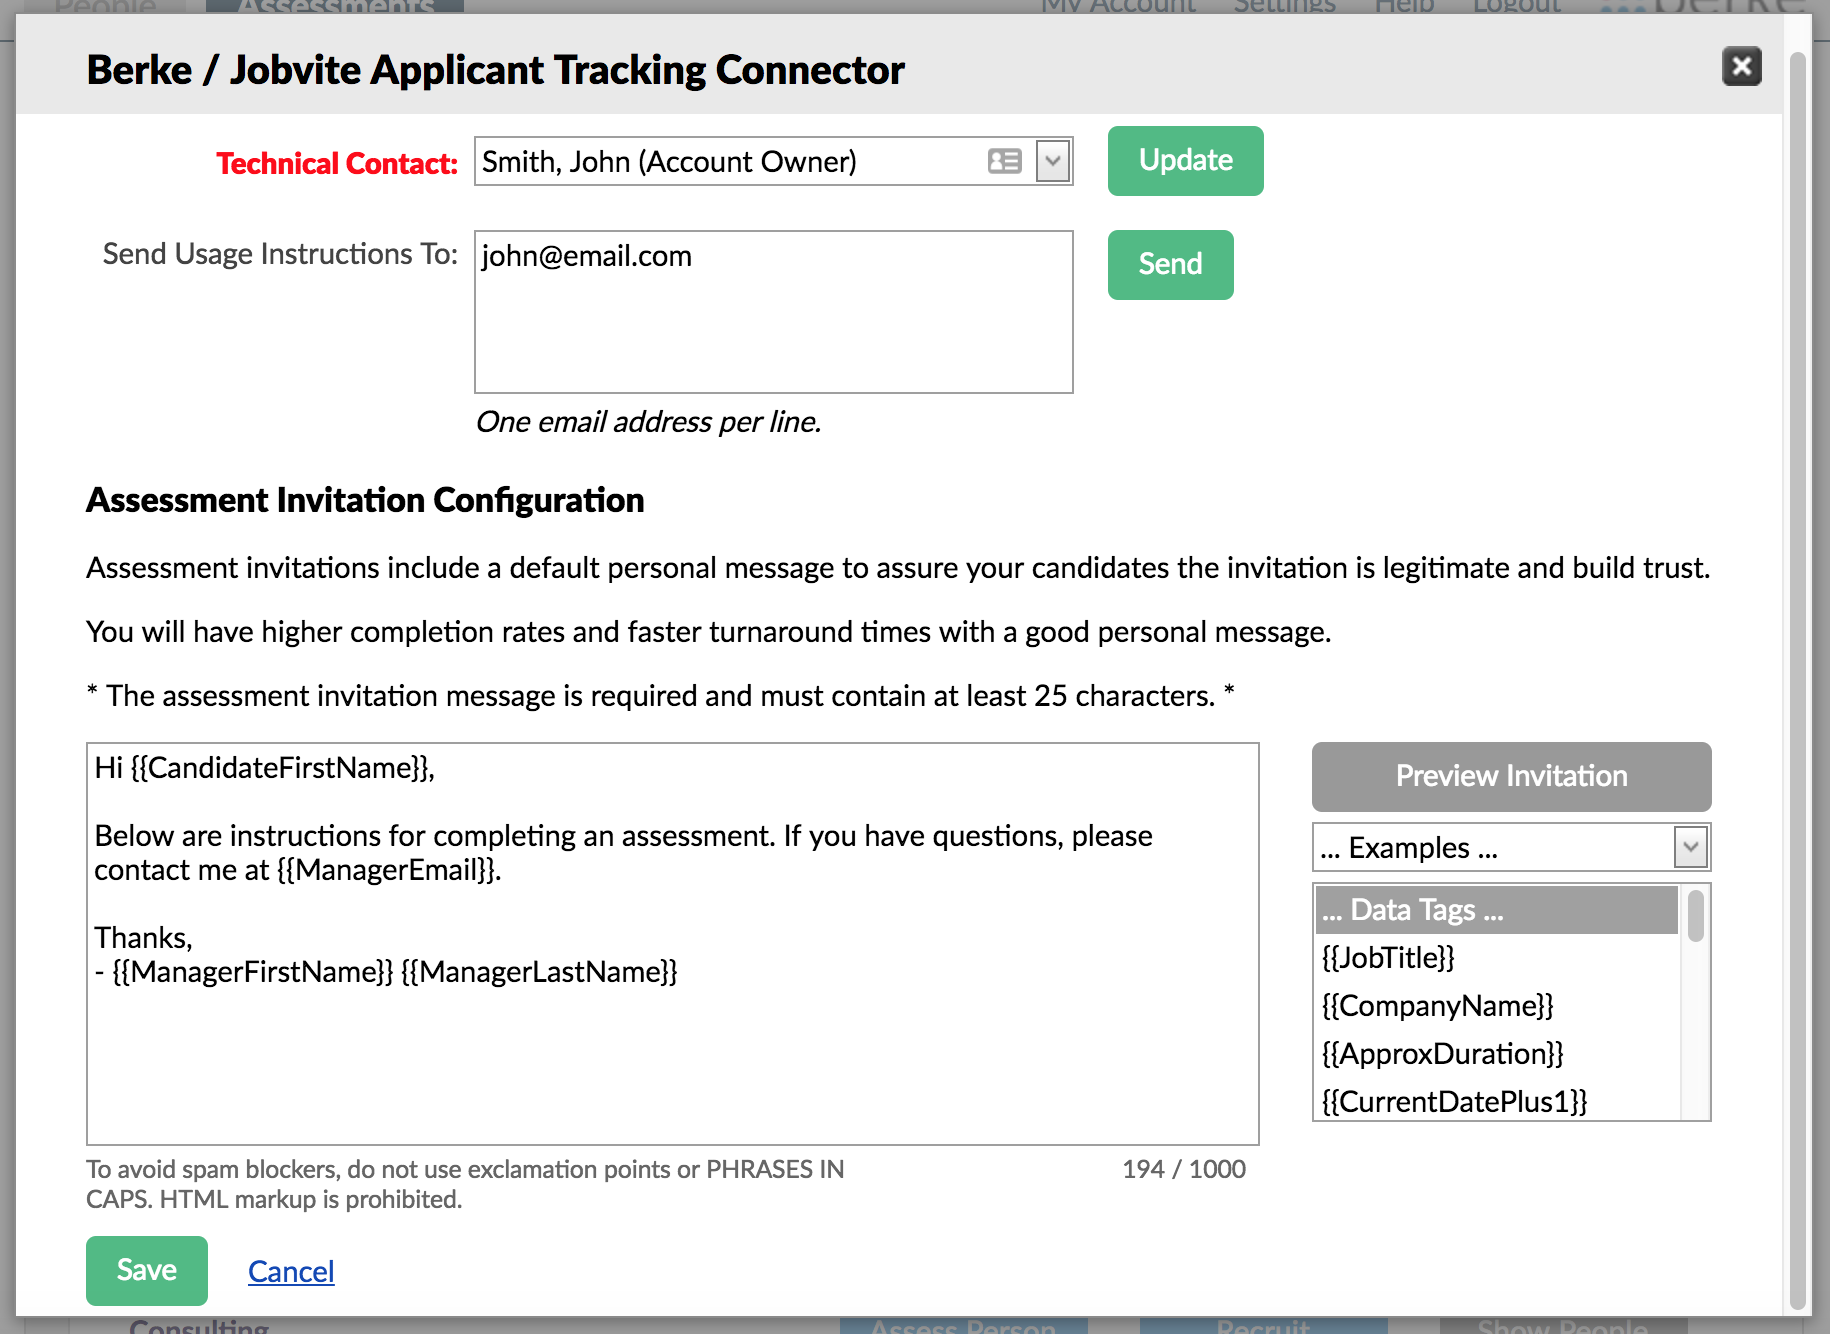 screenshot of the Berke / Jobvite Connector advanced settings page